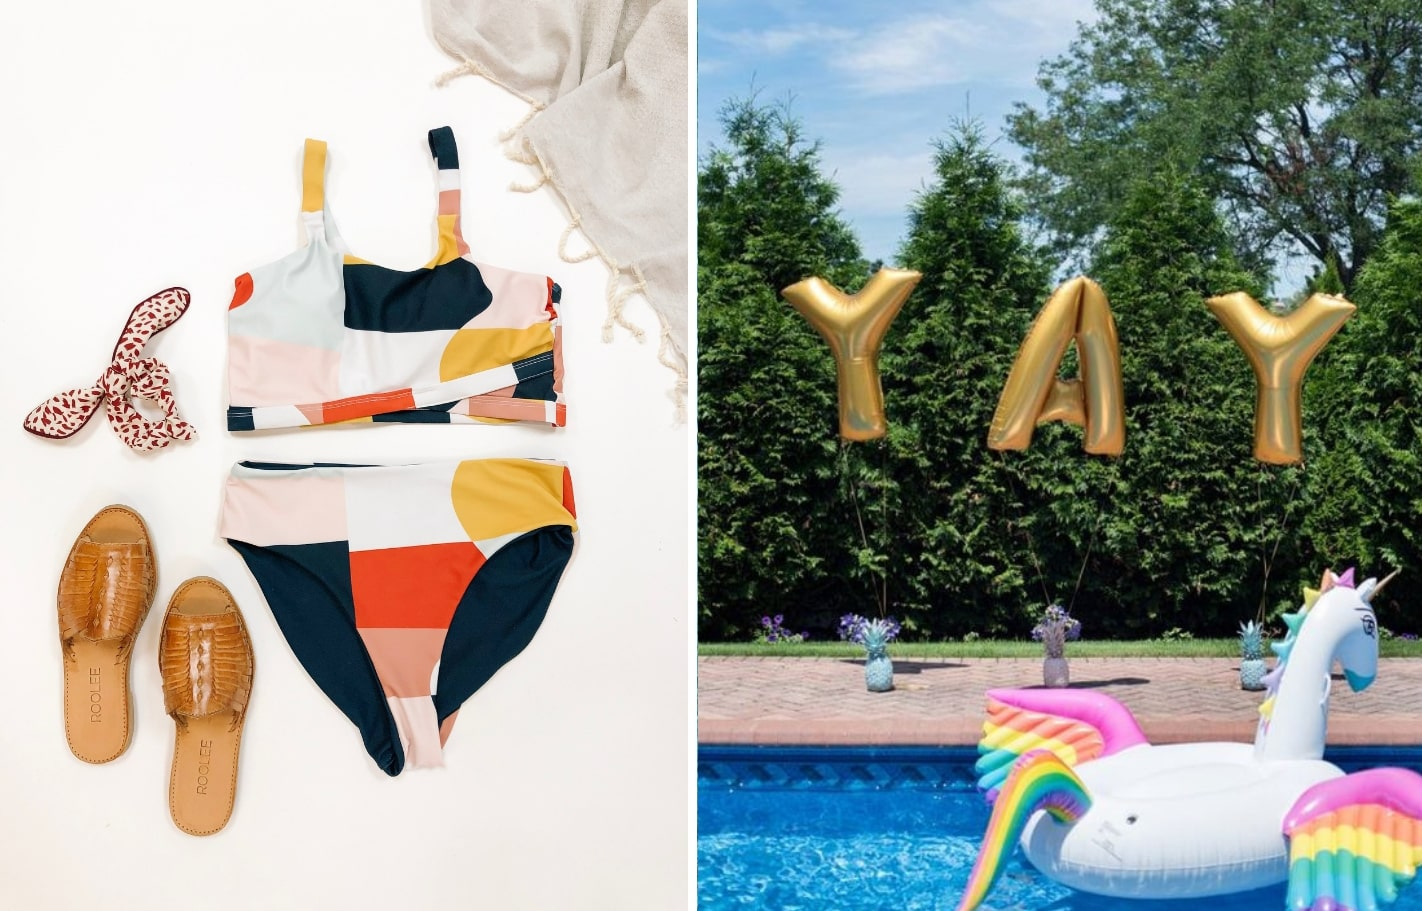 The Best Swimsuit For A Pool Party